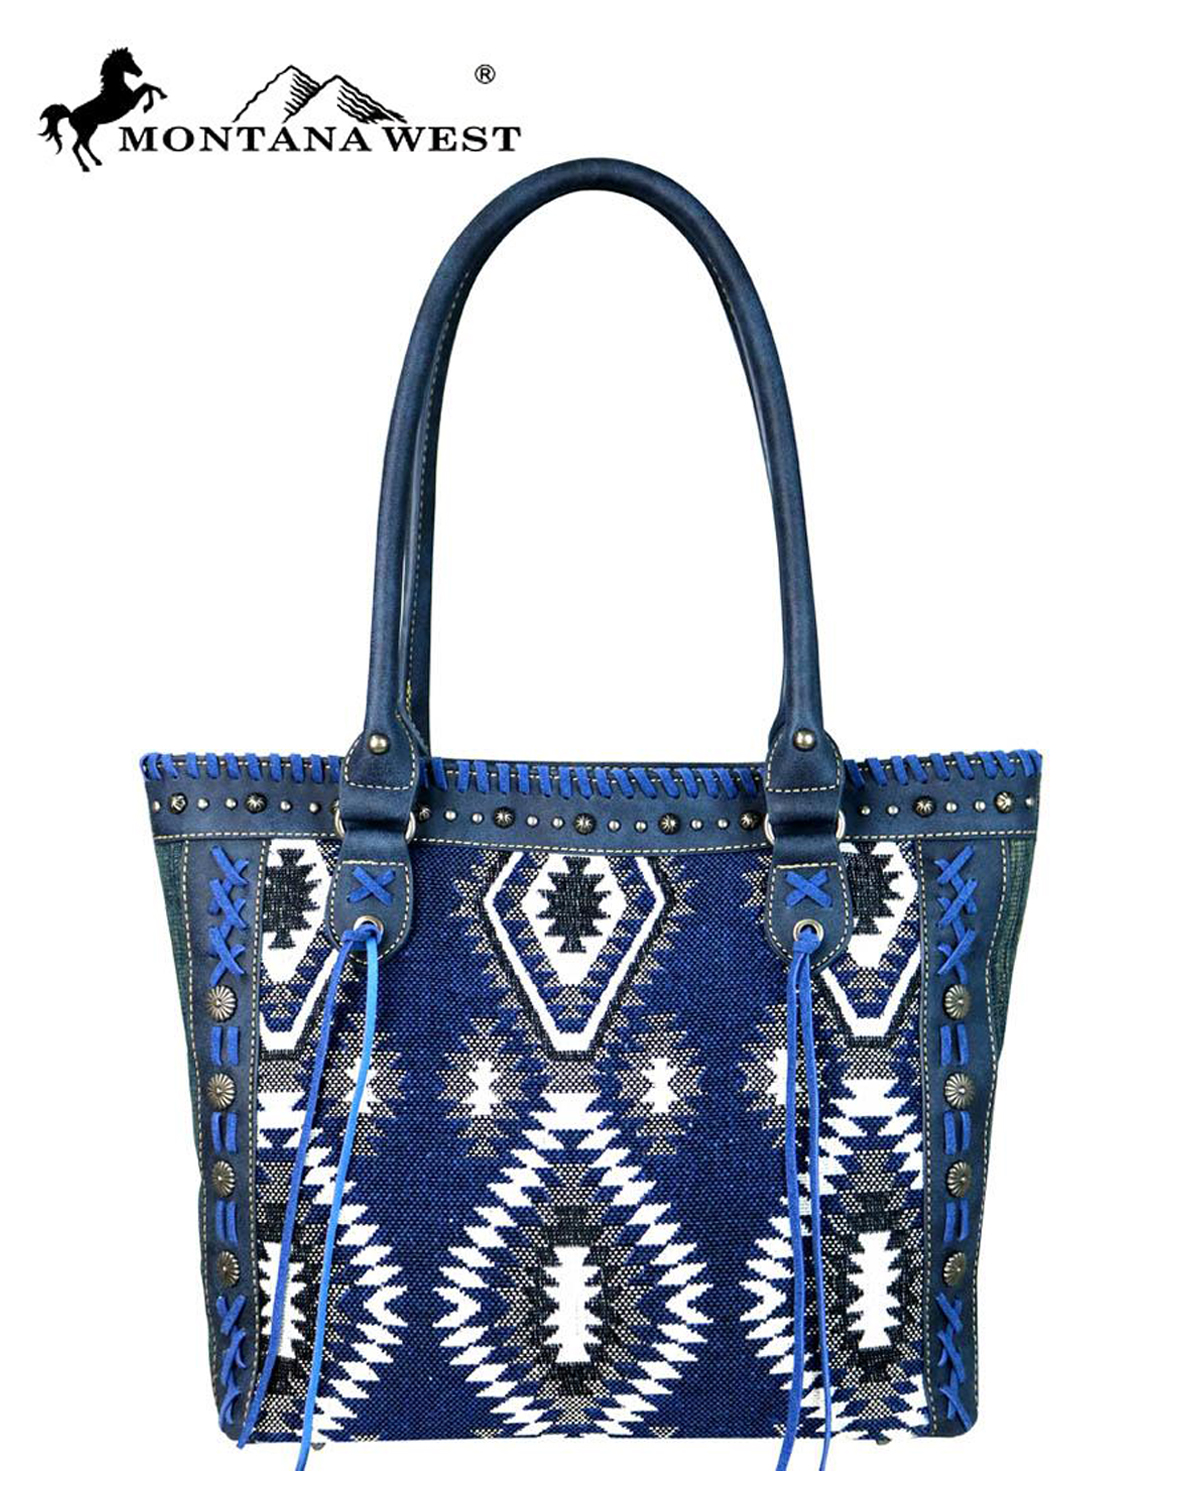 MW6418317(NV)-MW-wholesale-montana-west-handbag-aztec-washed-denim-concho-tassel-stitch-stud-rhinestone-southwestern(0).jpg